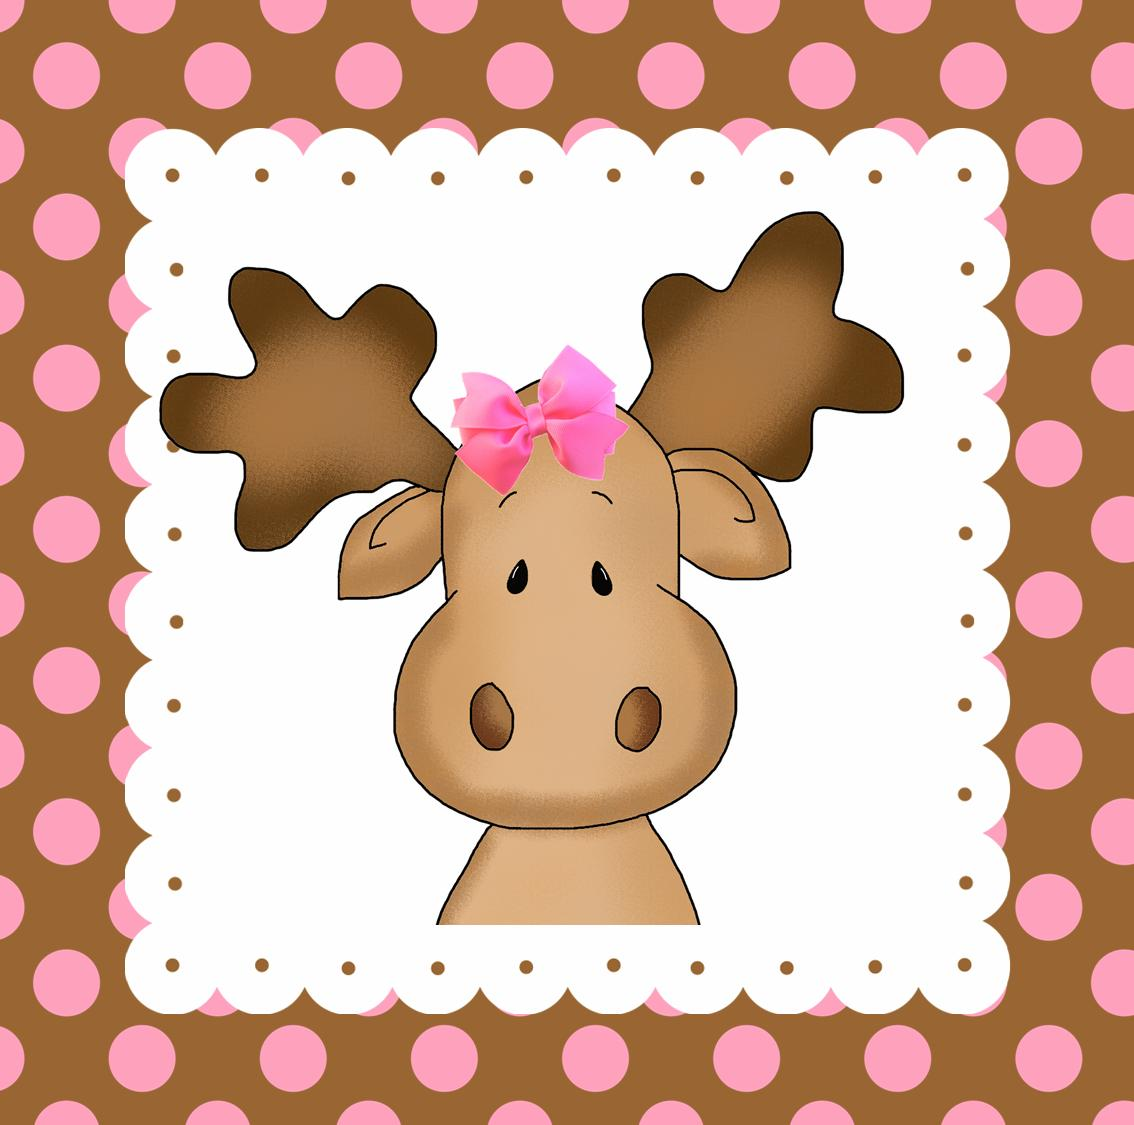 baby-moose-lips-facebook-avatar.jpg